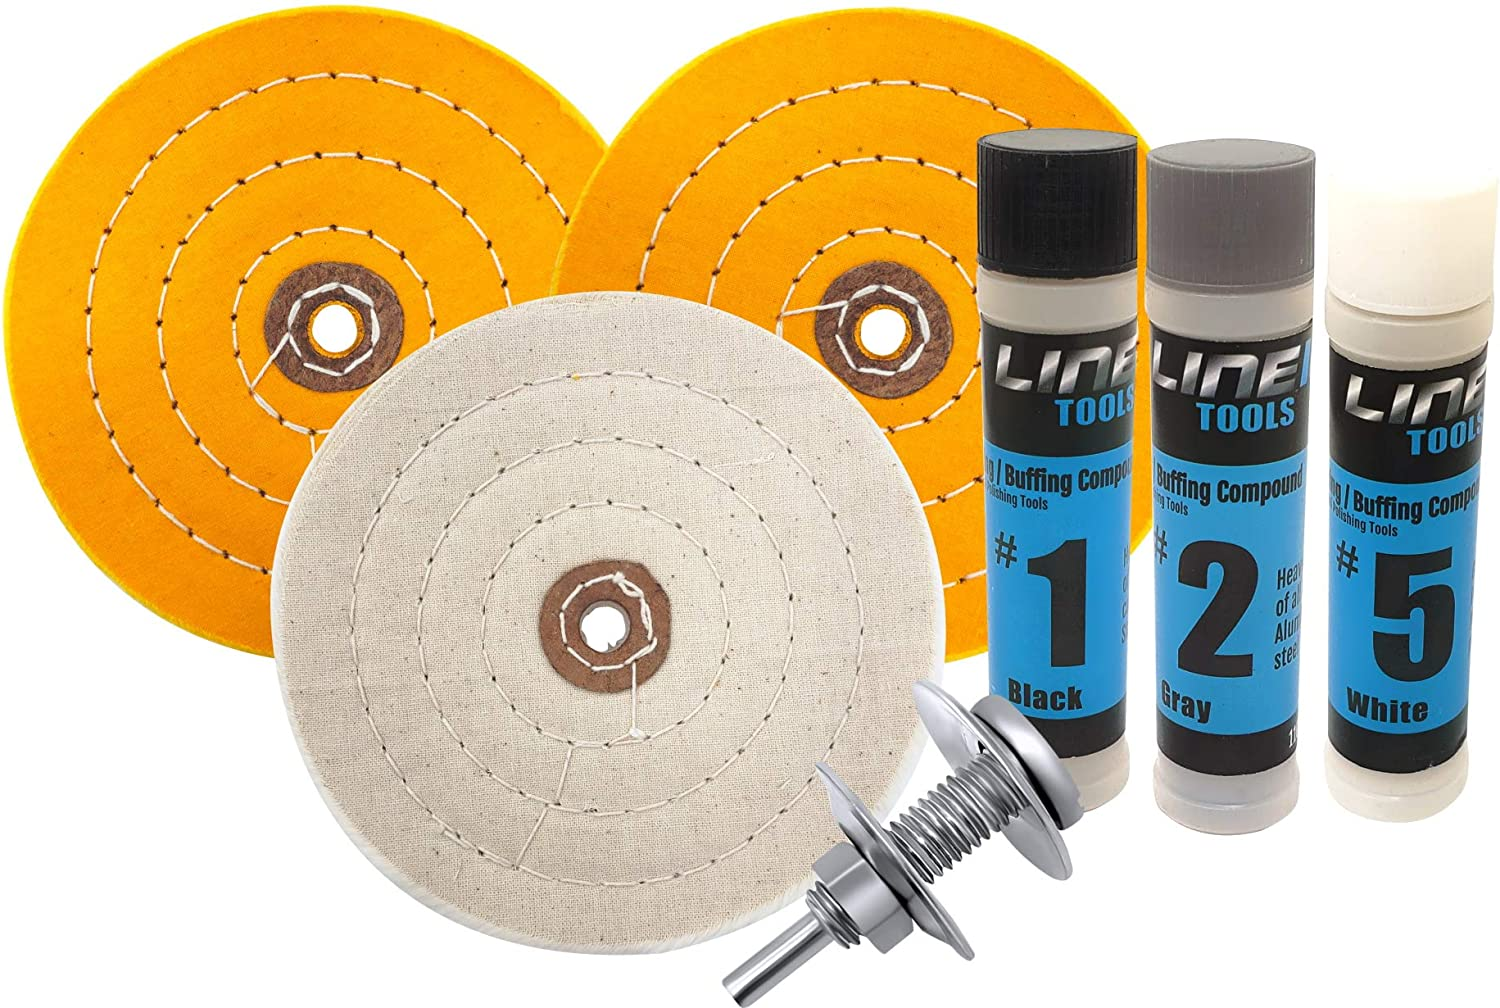 PURUI 9PC 6 Buffing Polishing Wheel Kit Used On Bench Grinder for Jewelry//Soft Metals,With 3PC 6 Buffing Wheel,3PC 100g Polishing Compound,2PC 1//2 Bench Grinder Spindle Adapter,1PC Microfibre Cloth